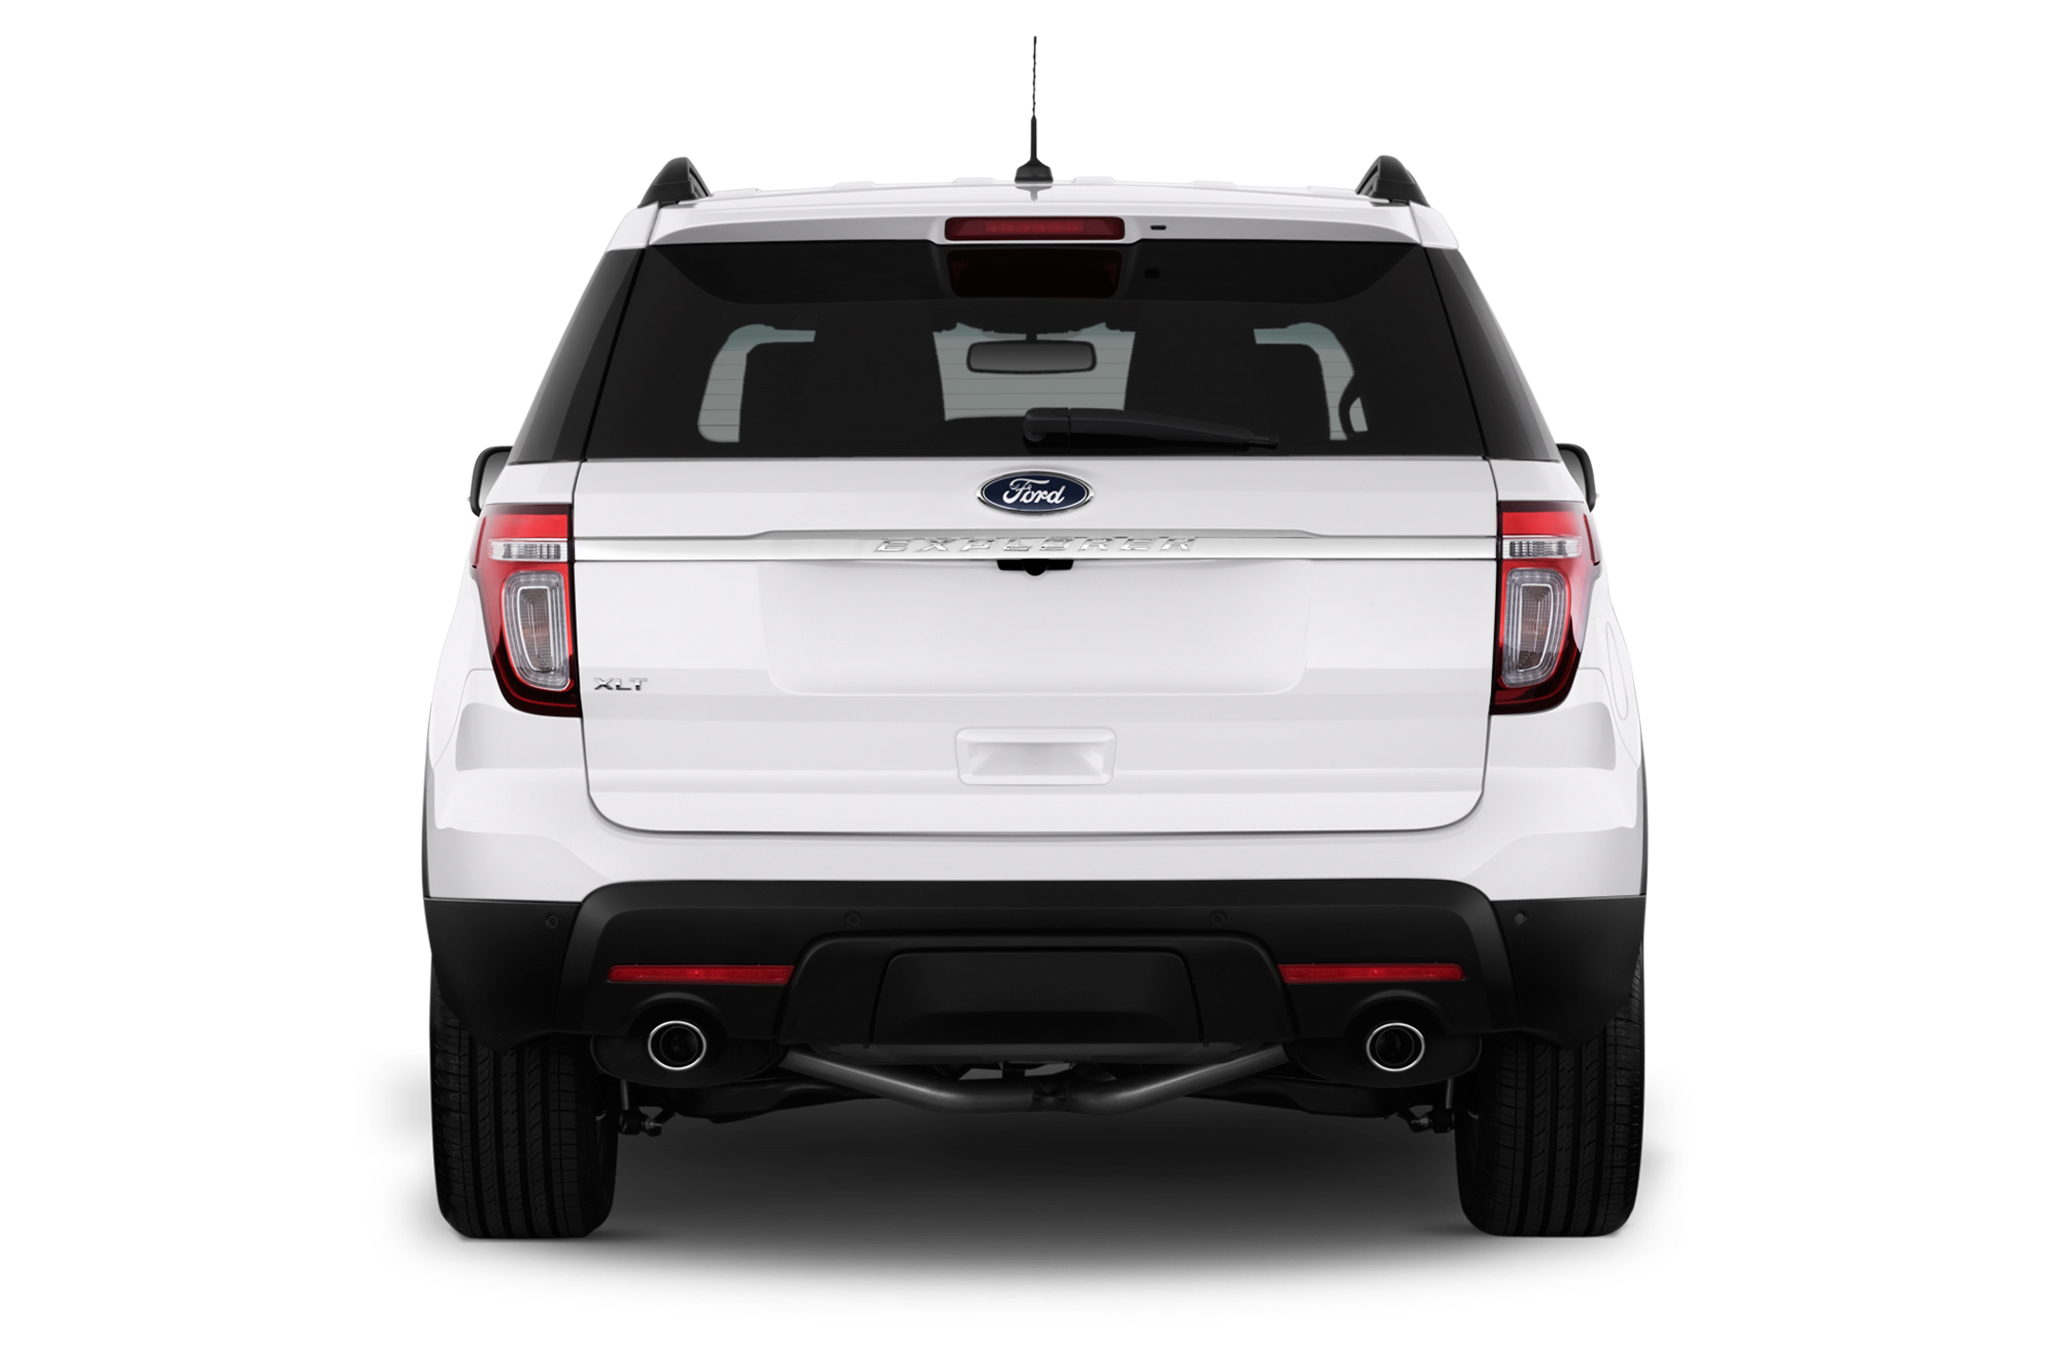 Ford explorer png download. Engine clipart side view